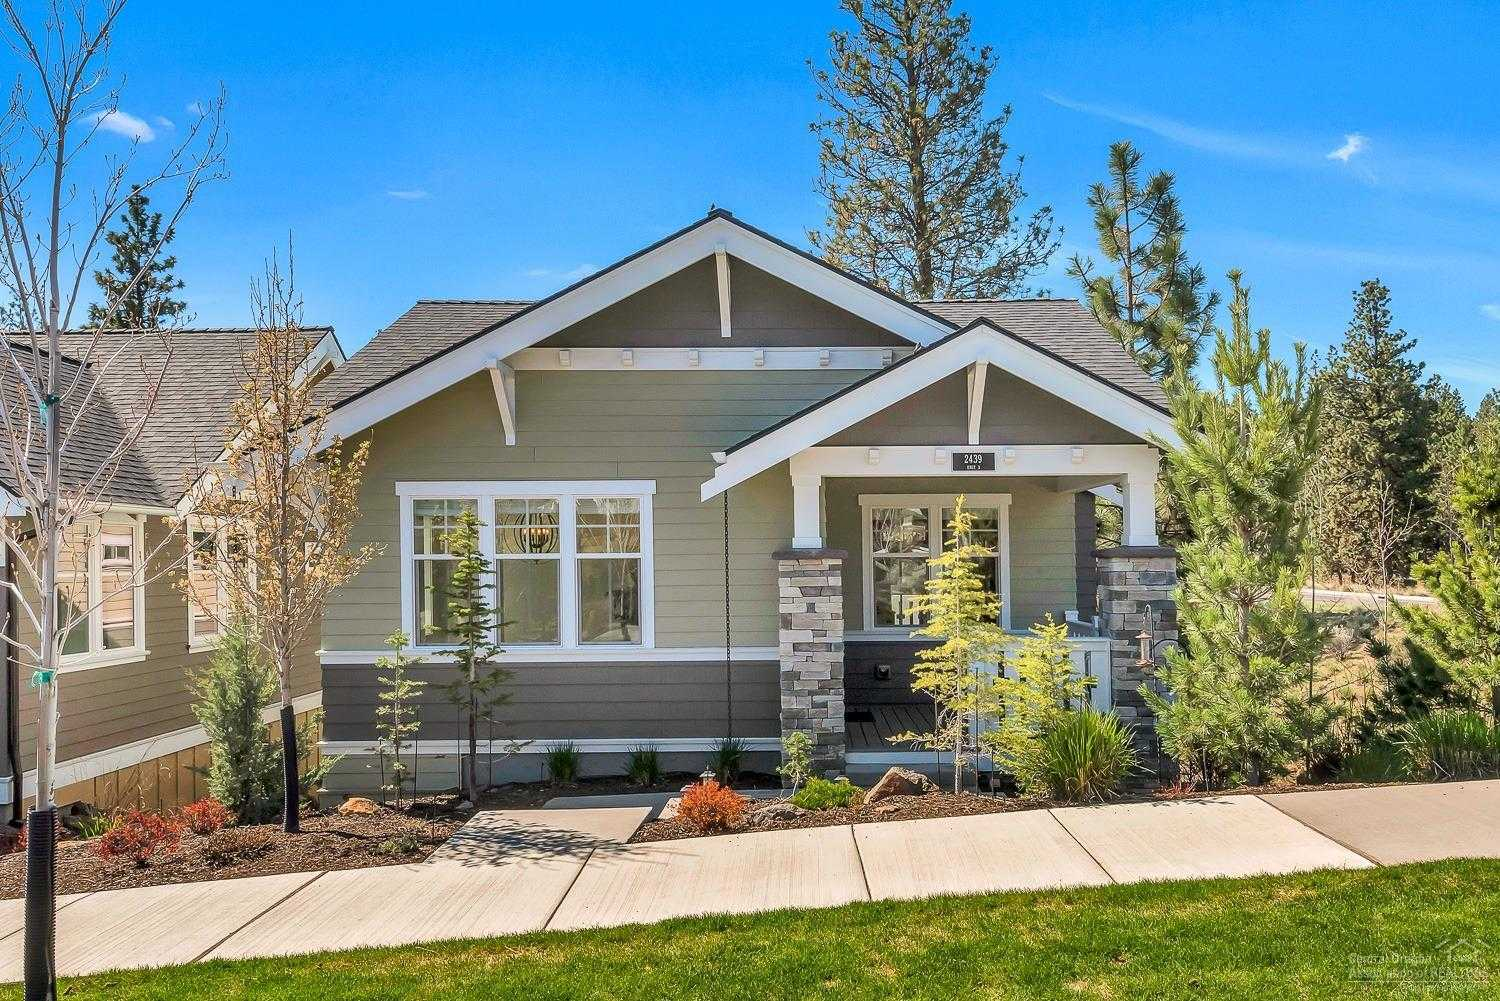 $529,000 - 2Br/1Ba -  for Sale in Commons At Northwest, Bend